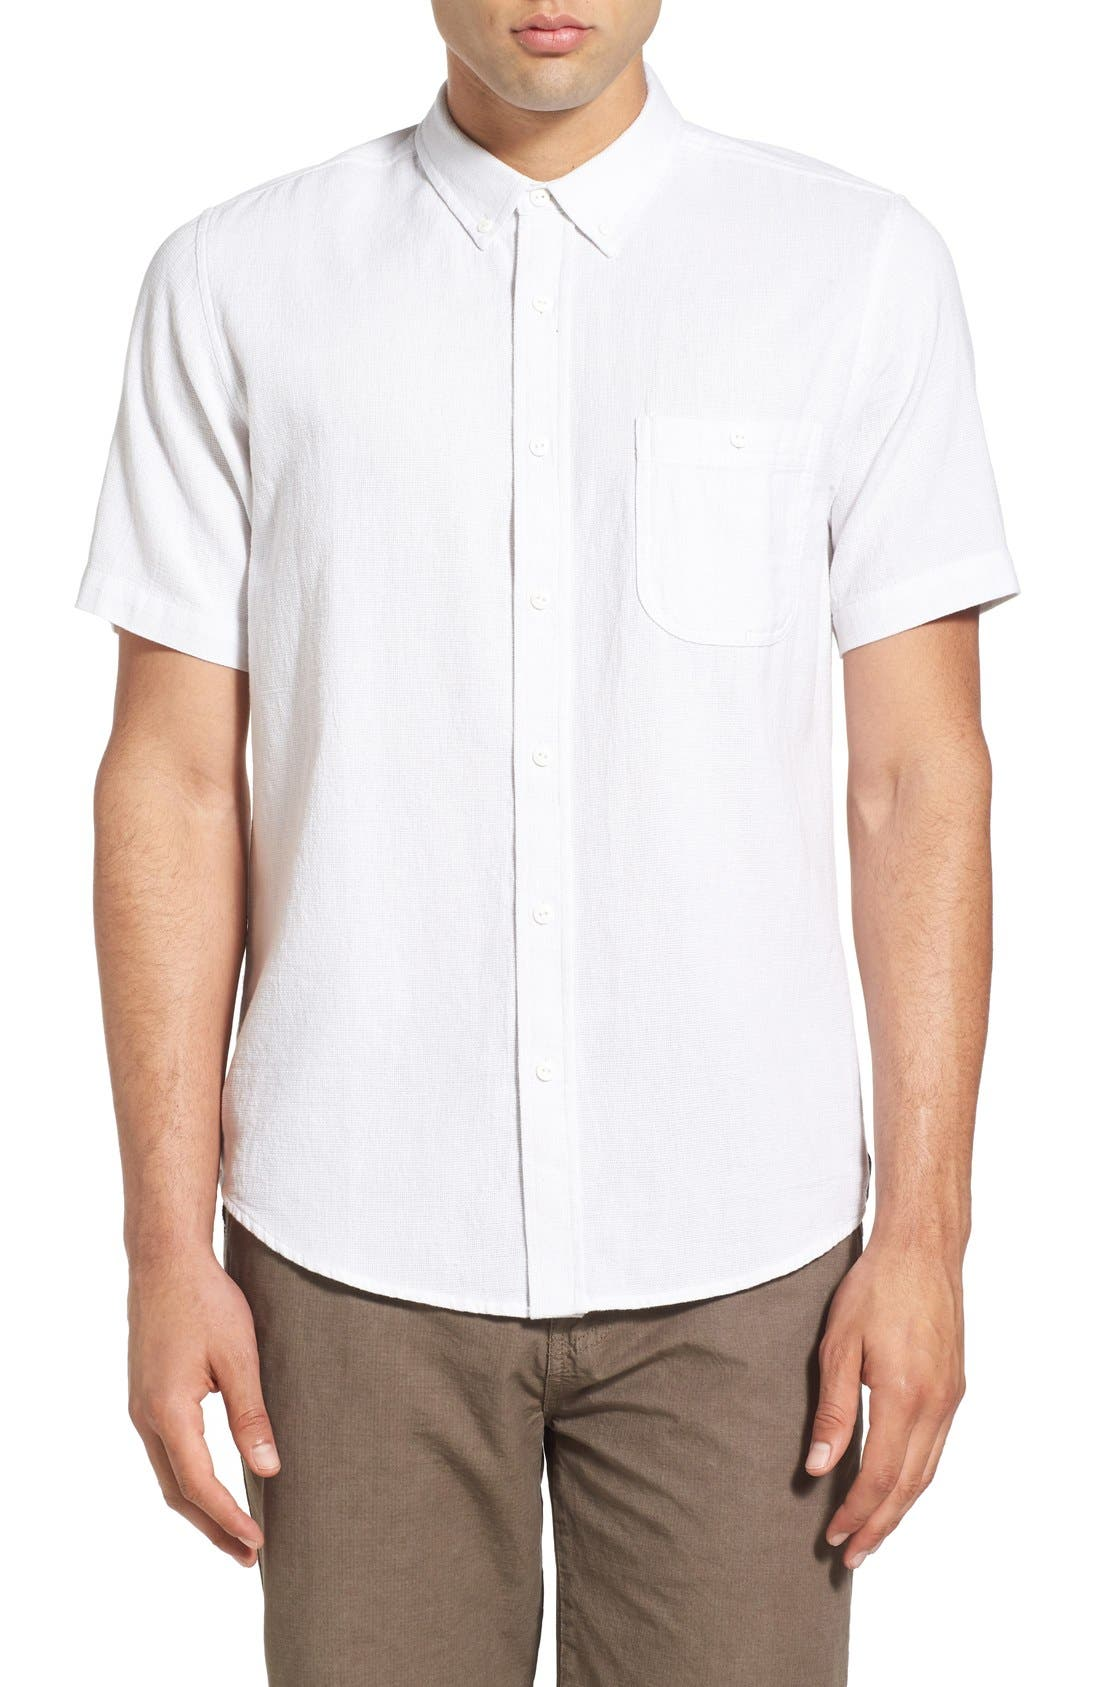 Alternate Image 1 Selected - Ezekiel 'Highland' Regular Fit Short Sleeve Woven Shirt